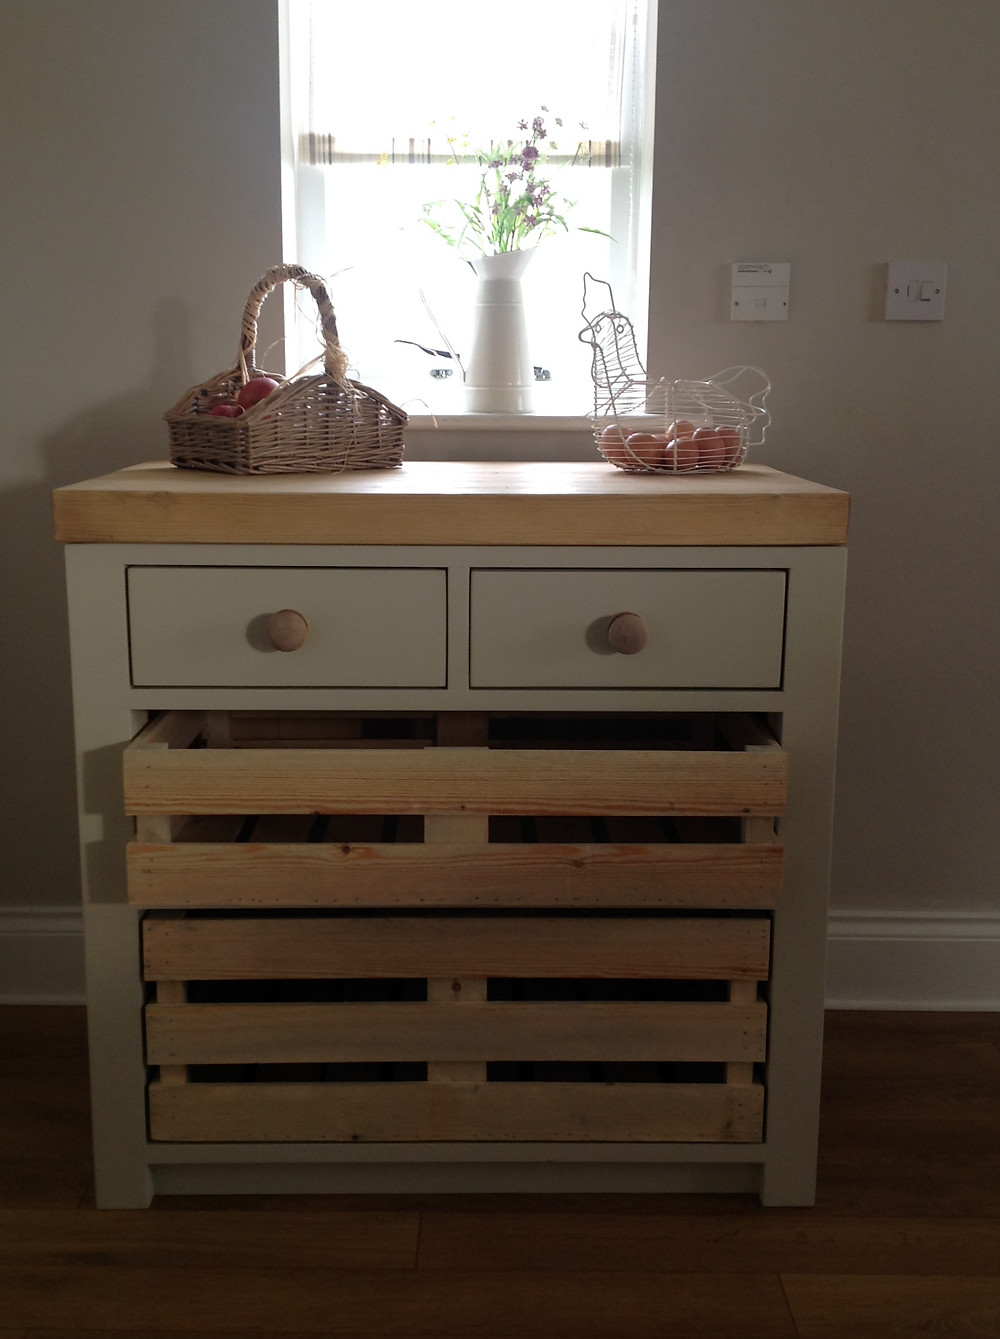 Handmade Kitchen Unit by greenhilljoinery.com